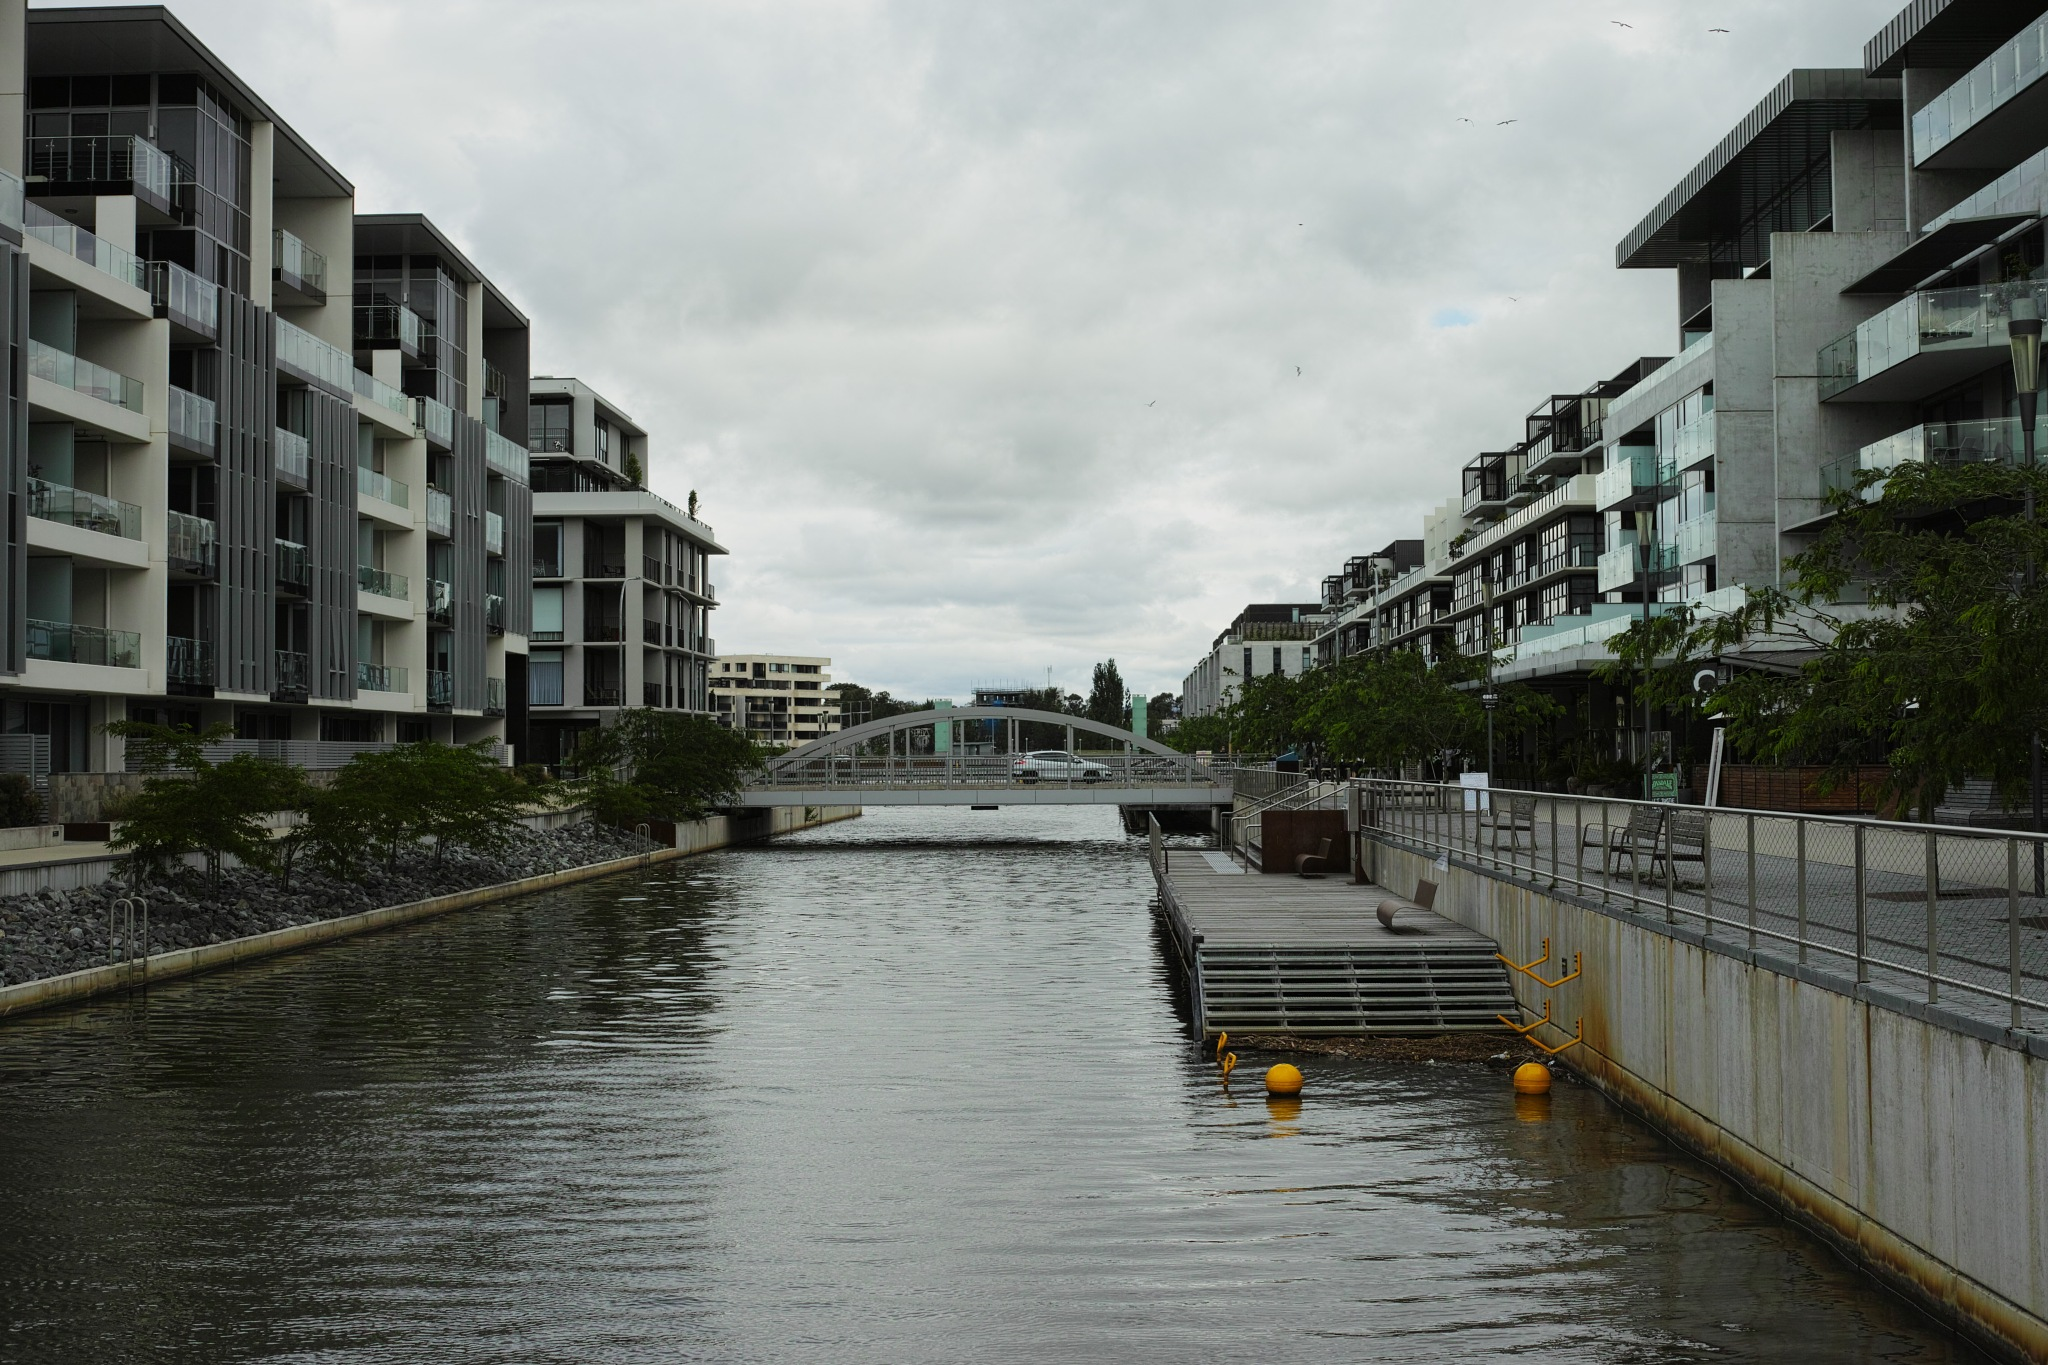 More housing at the canal by TonyG